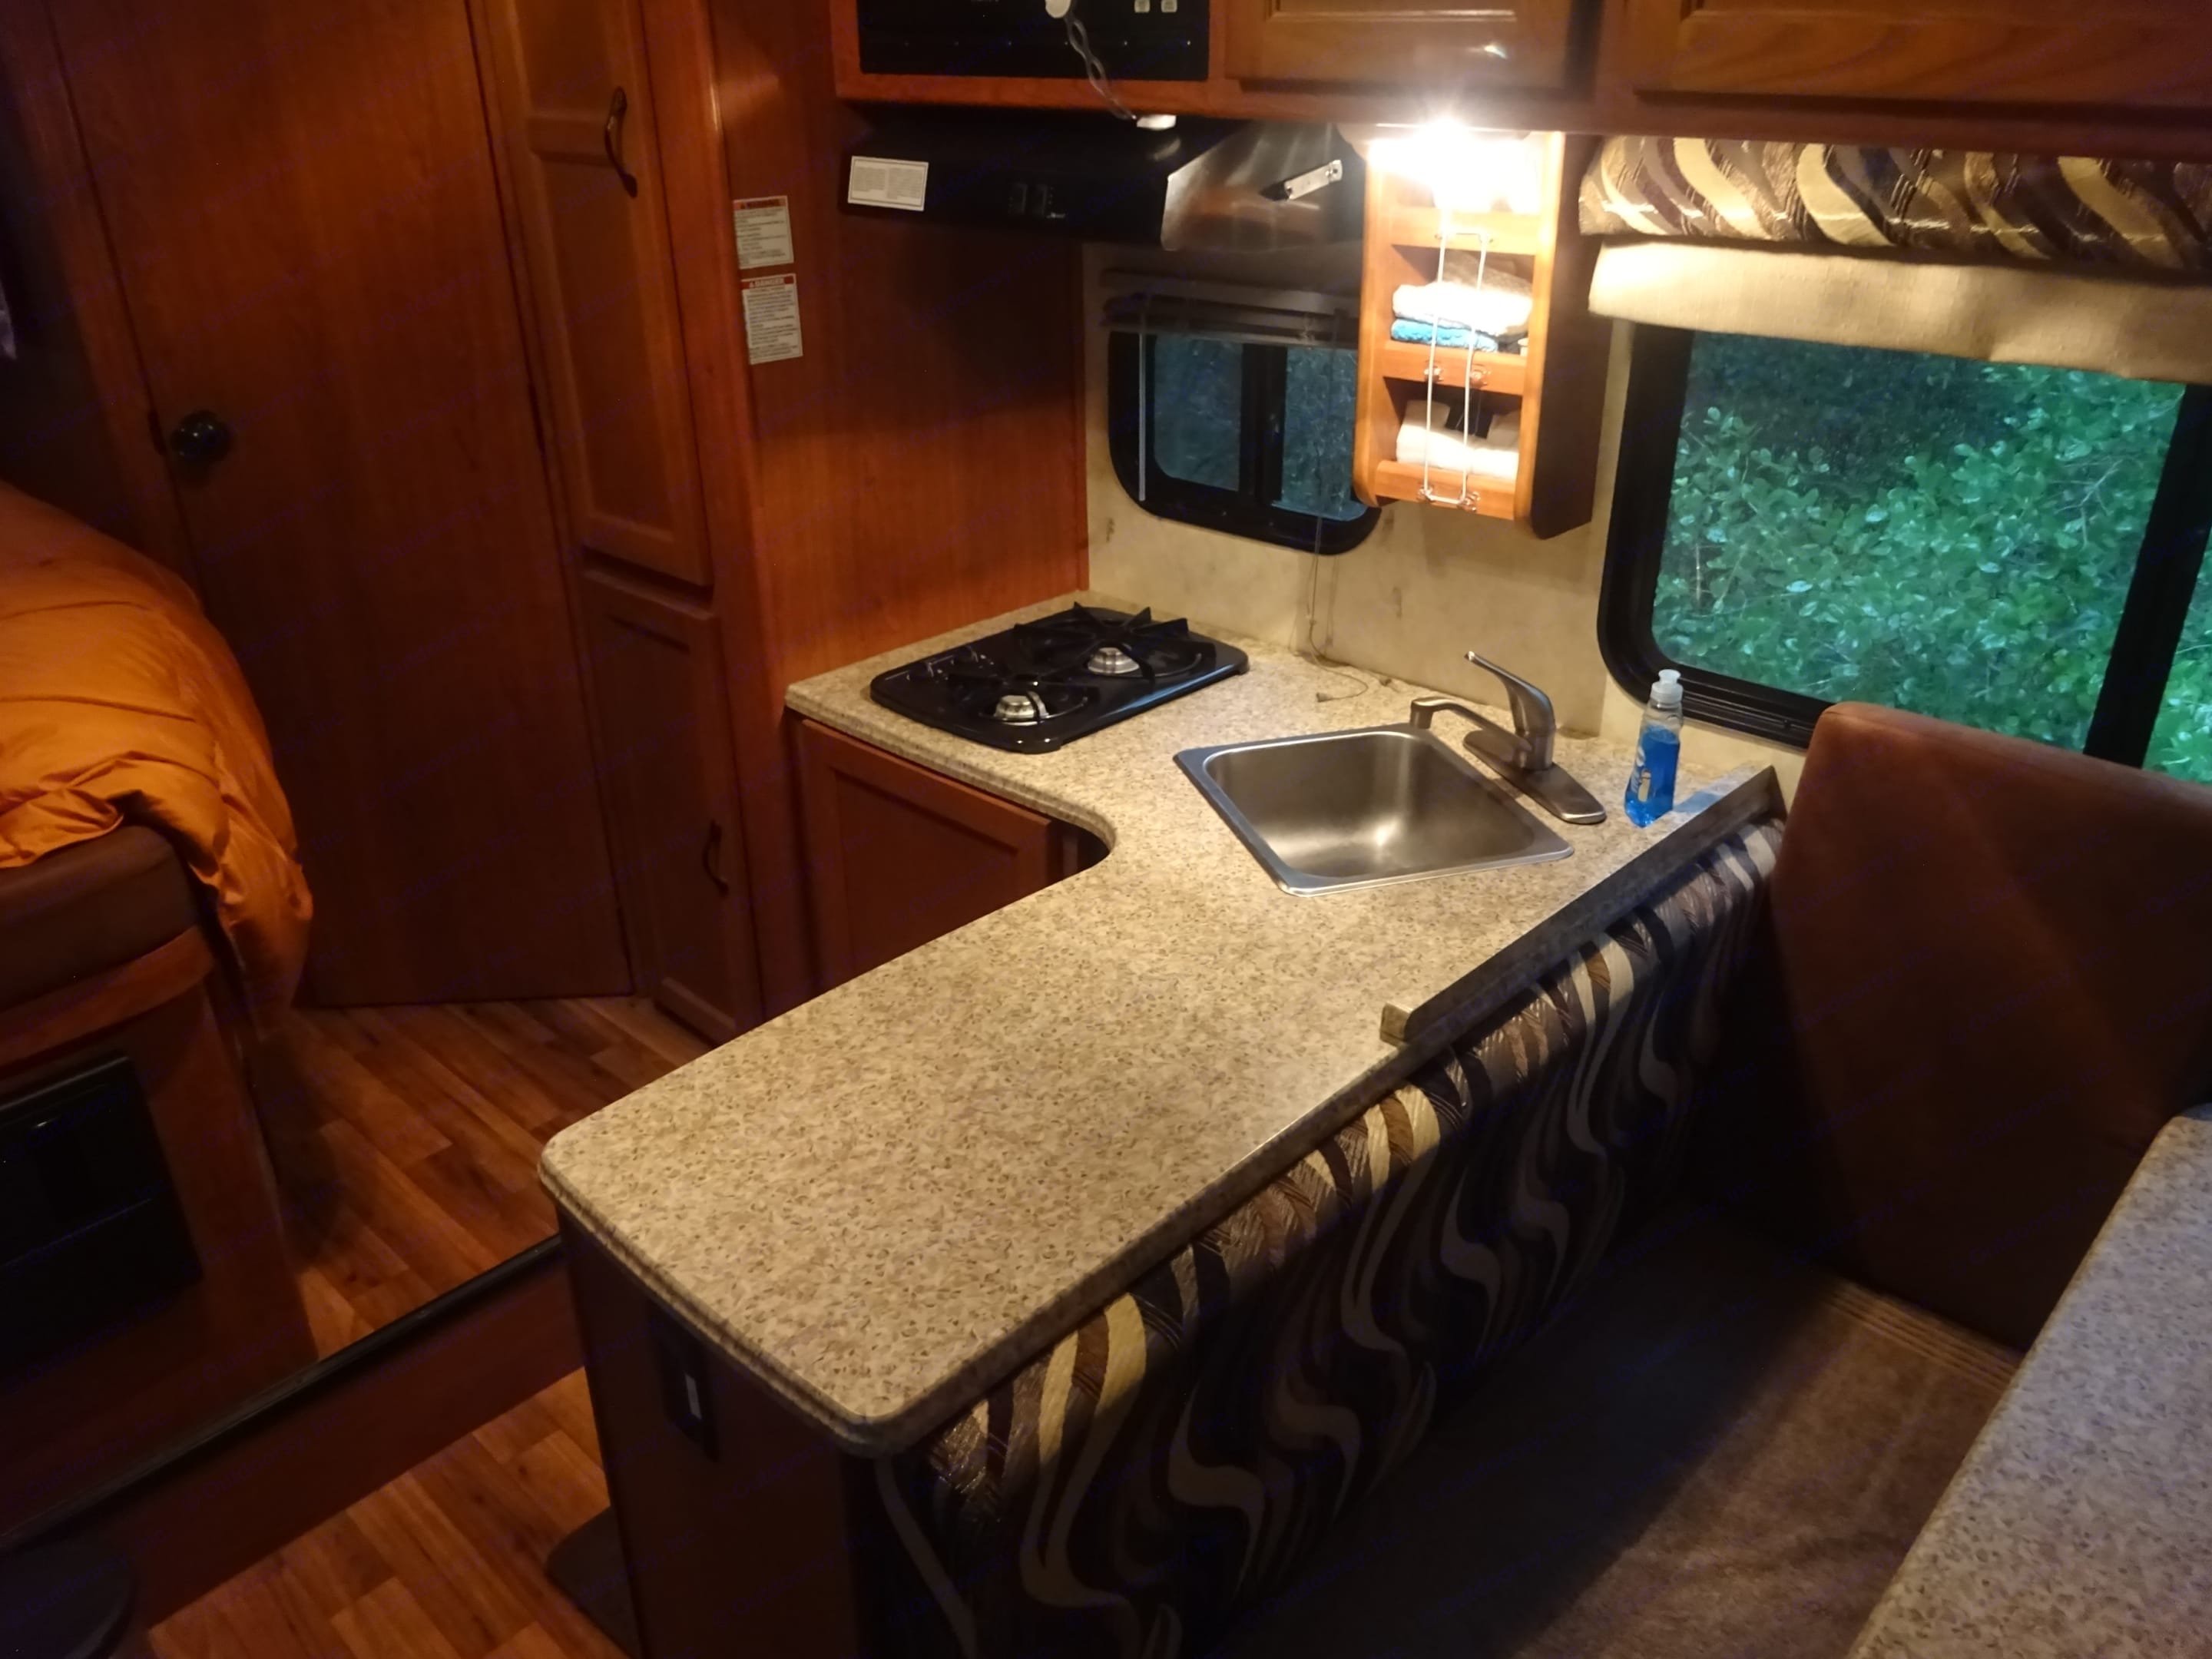 Microwave above stove, Refrigerator at left.  Dining table and bench seat at right.. Coachmen Freelander 2013